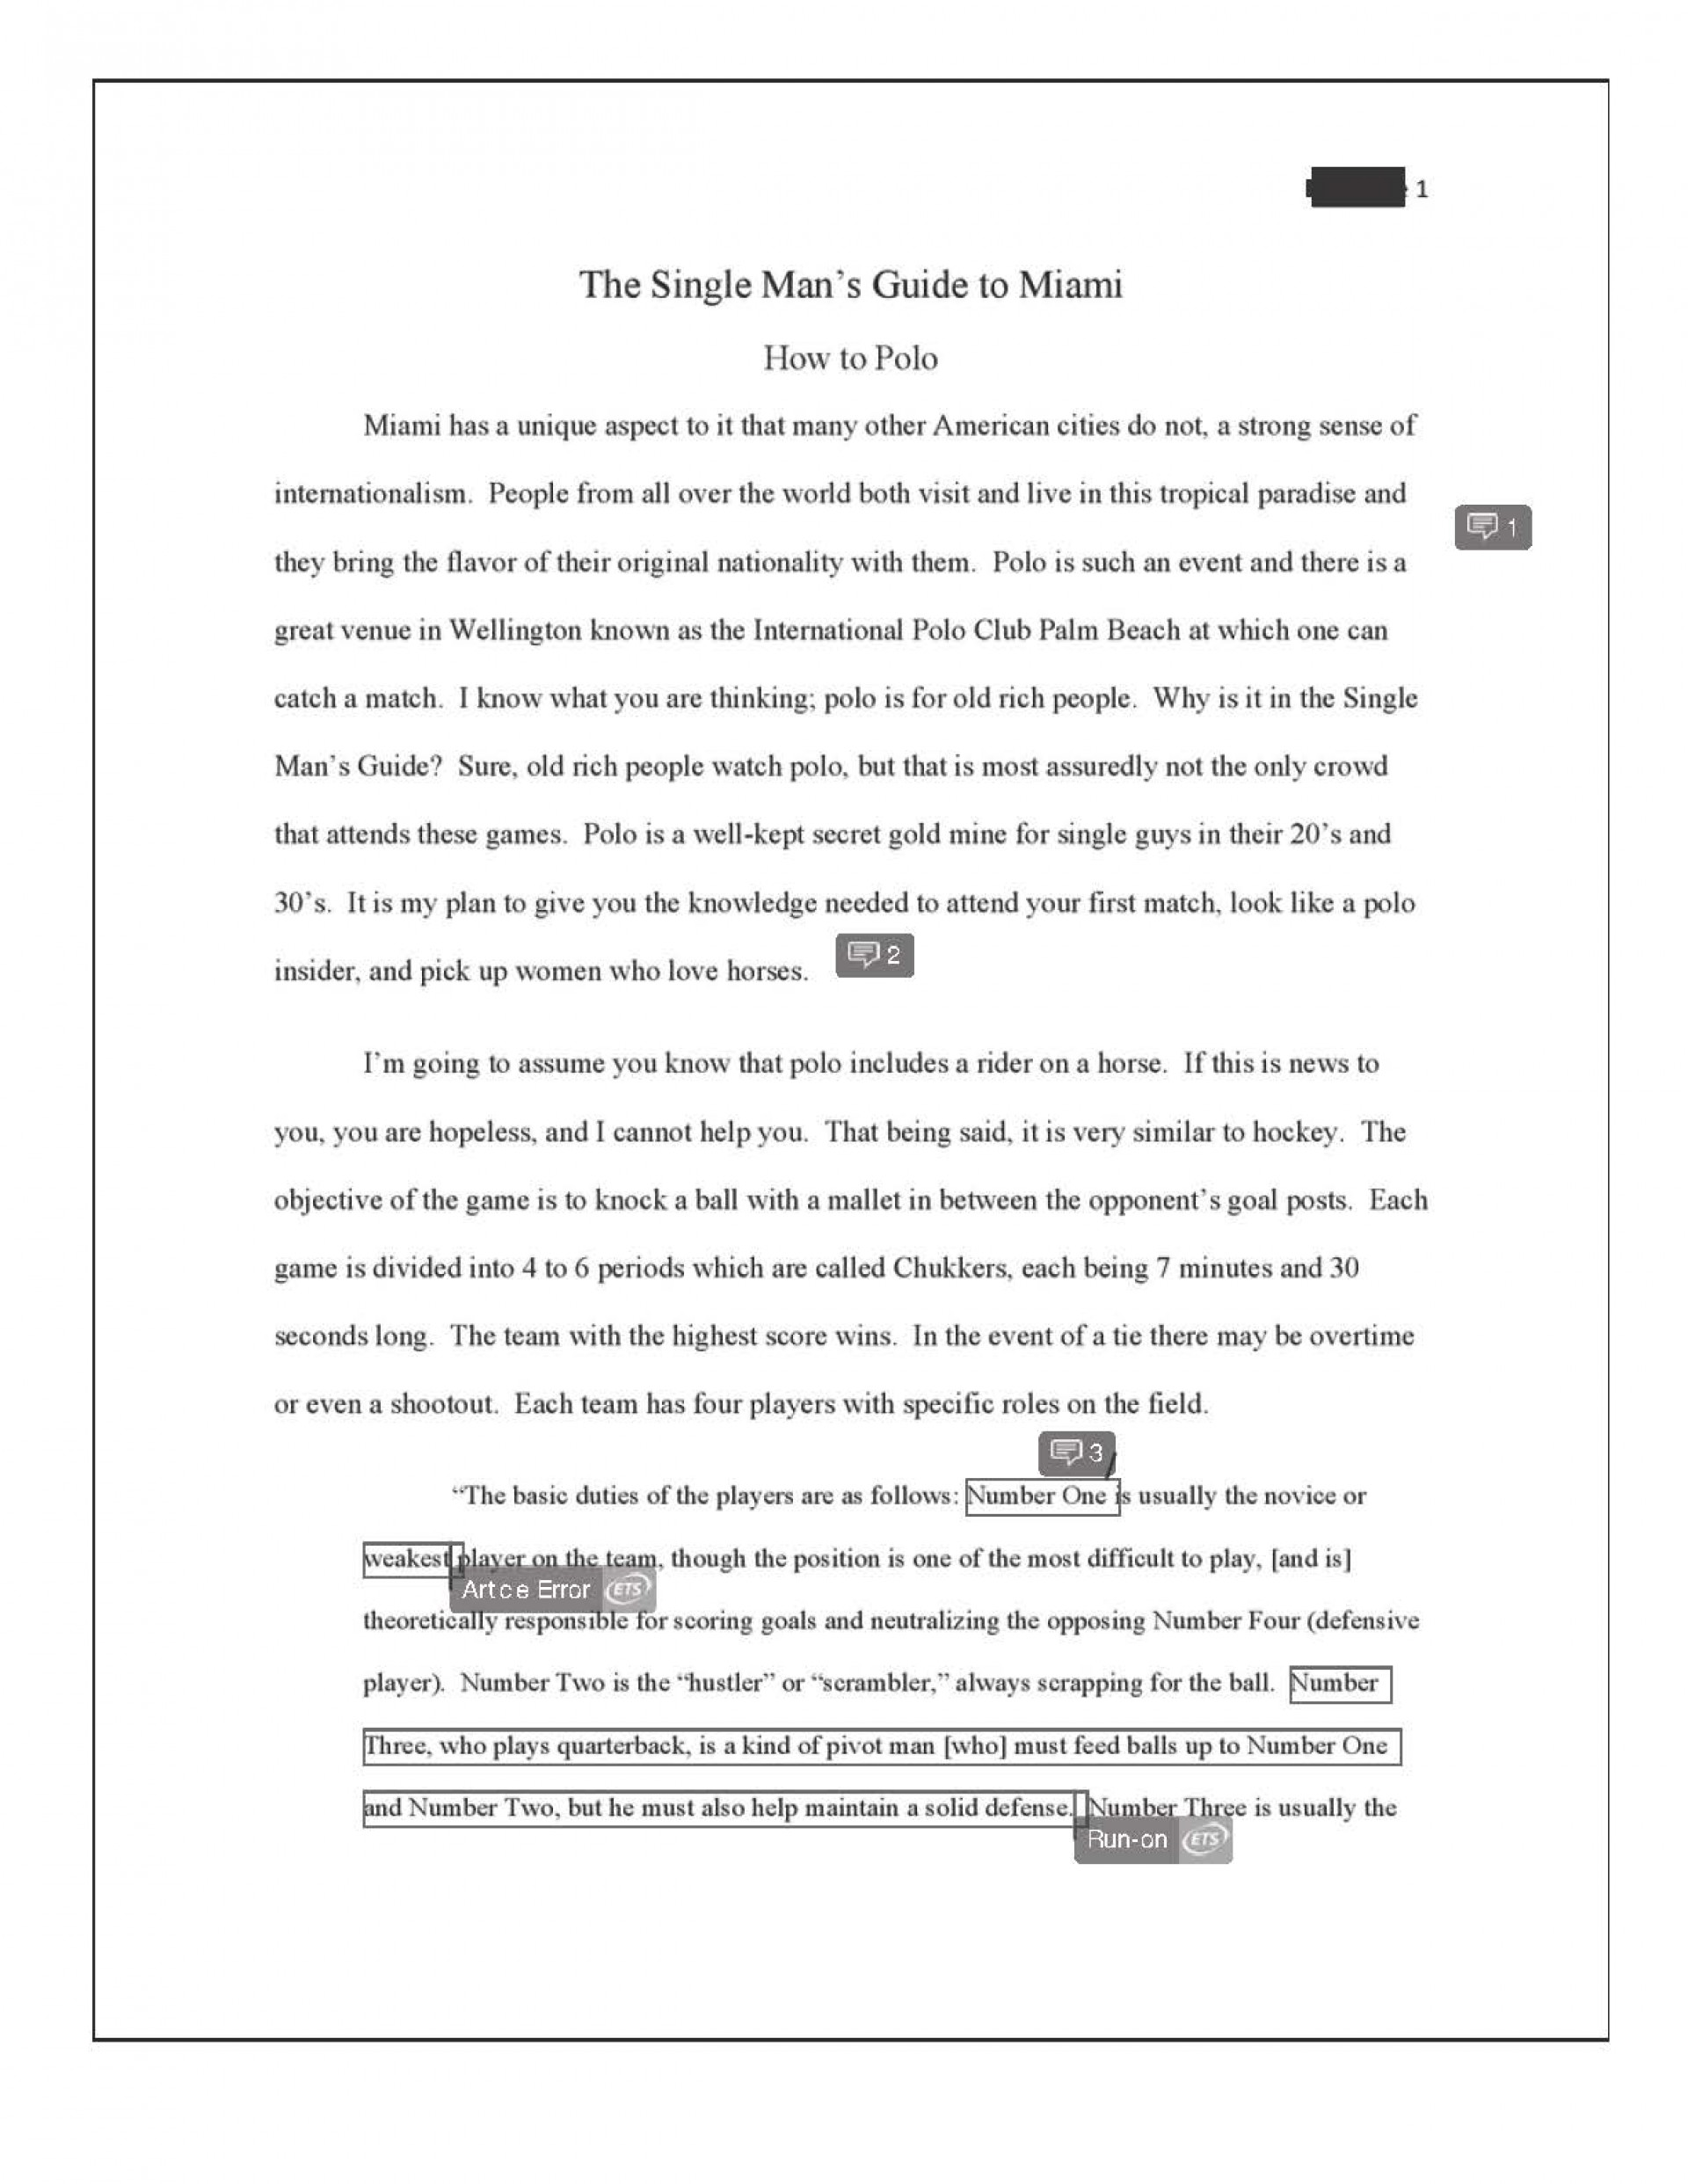 005 Informative Essay Topics Essays Sample Funny Argumentative For Middle School Final How To Polo Redacted P College Students Hilarious Good Remarkable Expository Secondary 4th Grade 5th 1920